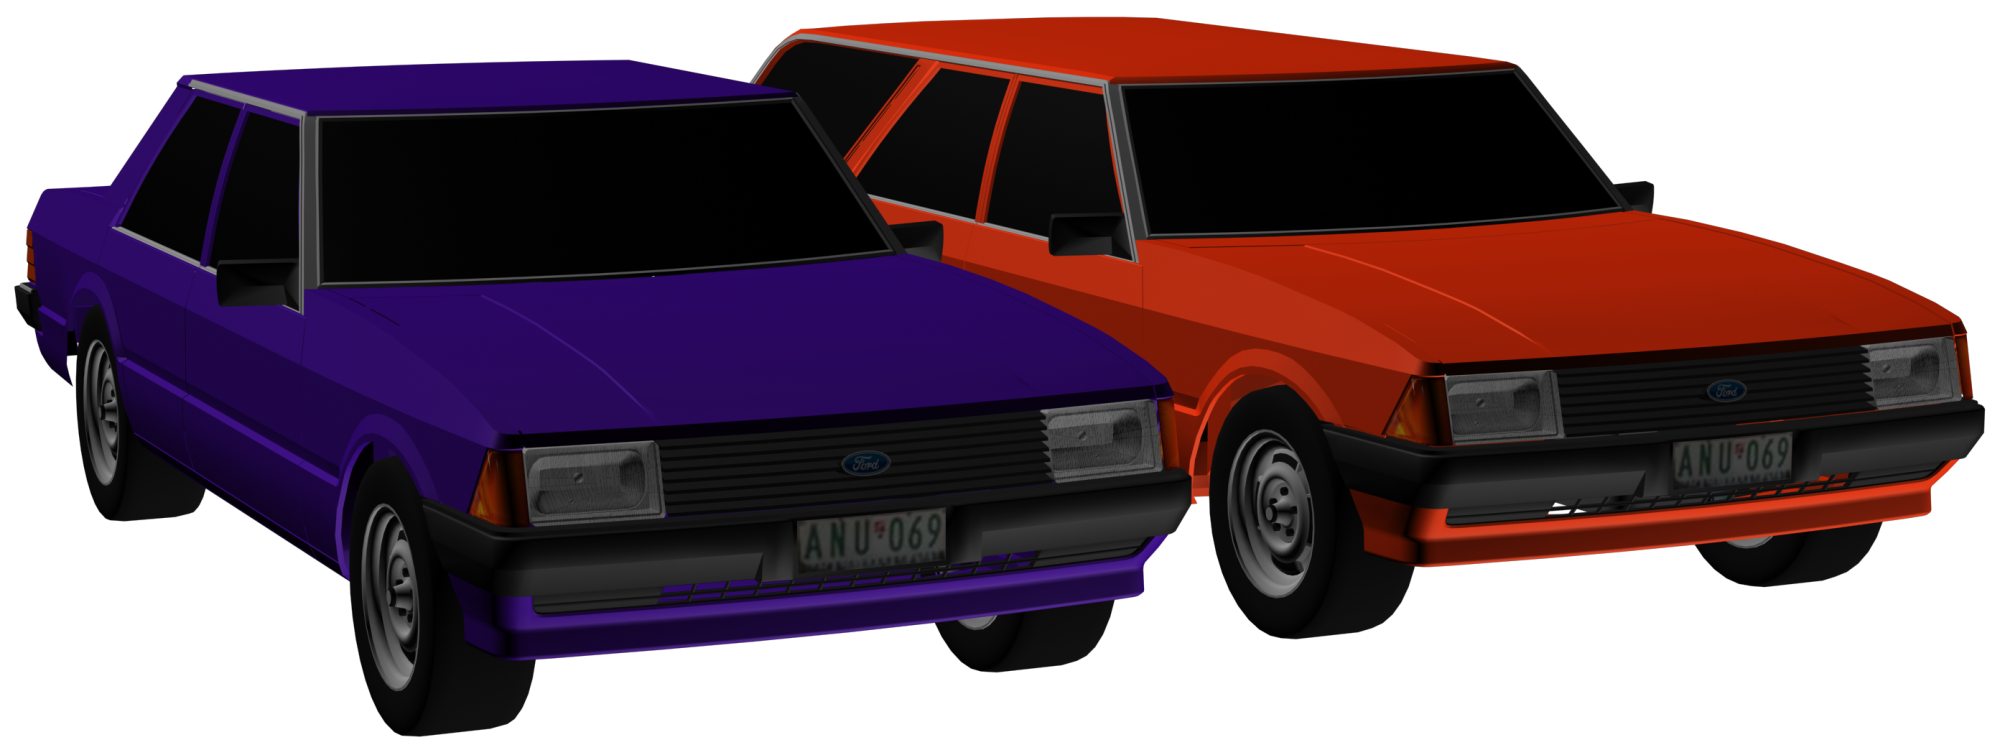 File_82-XD_Sedan_Wagon_Render1.png